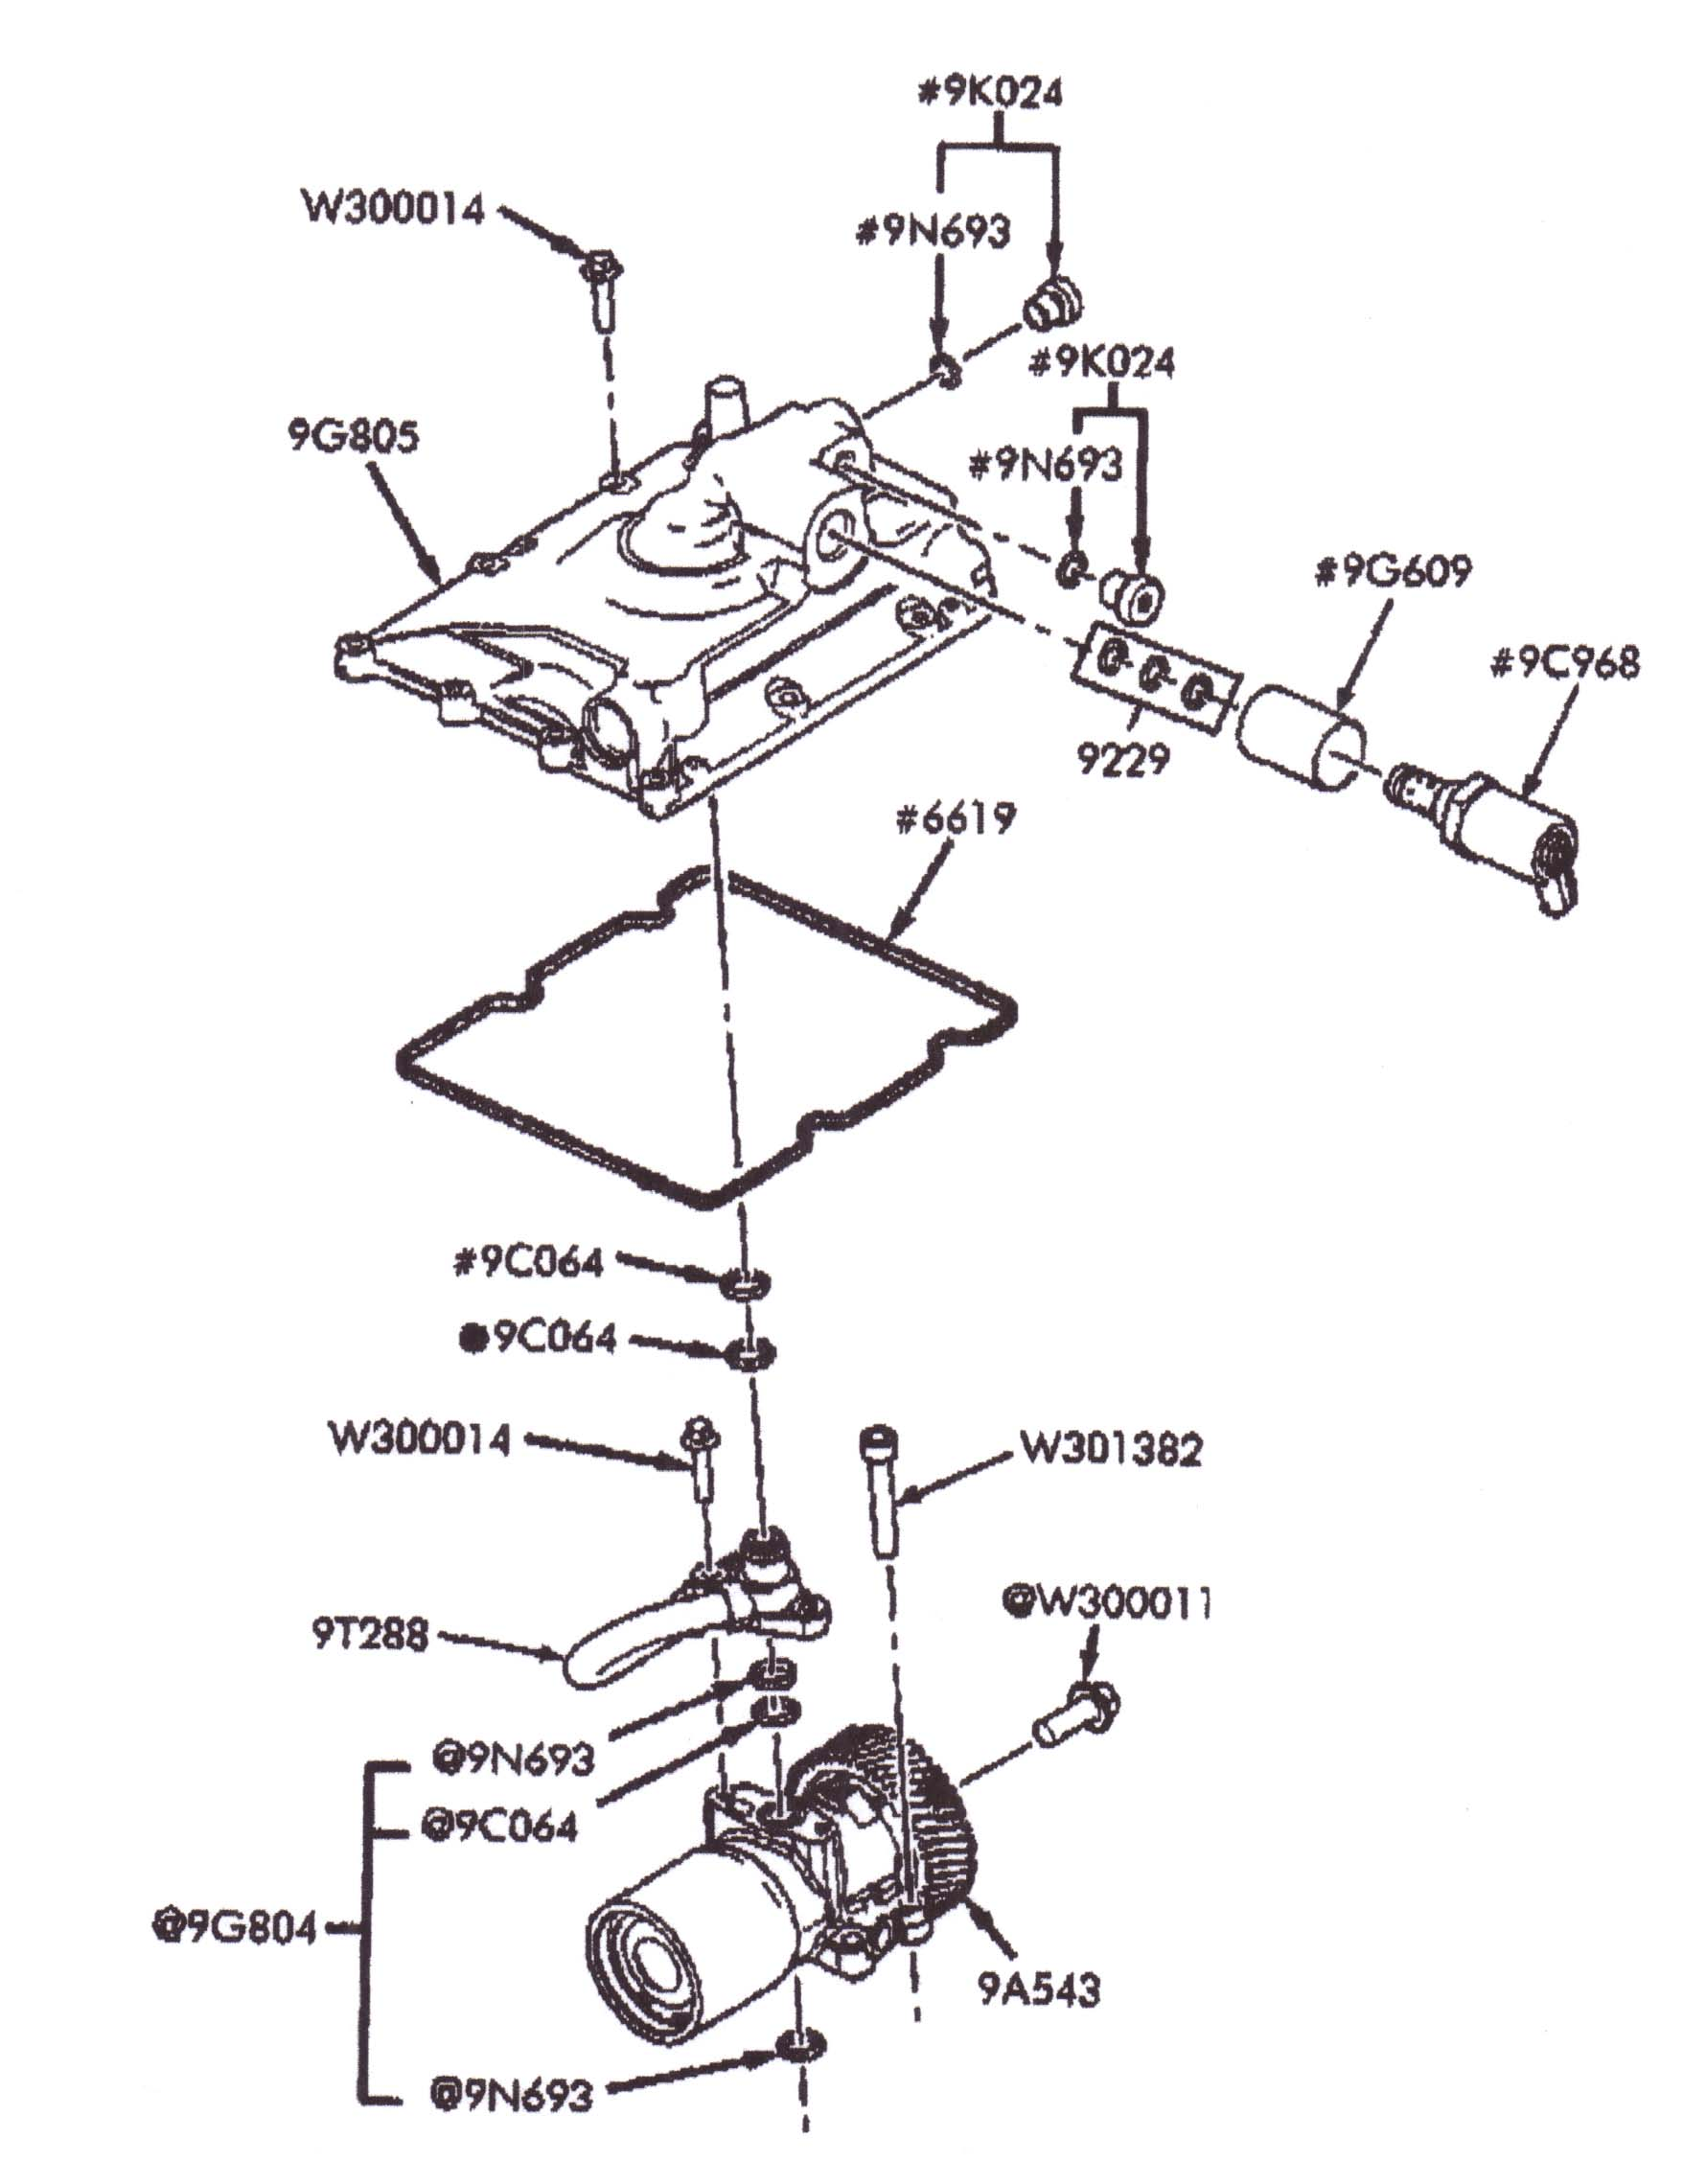 Ford lcf 4 5l engine wiring wiring diagrams schematics ford lcf 4 5l engine wiring pooptronica Images